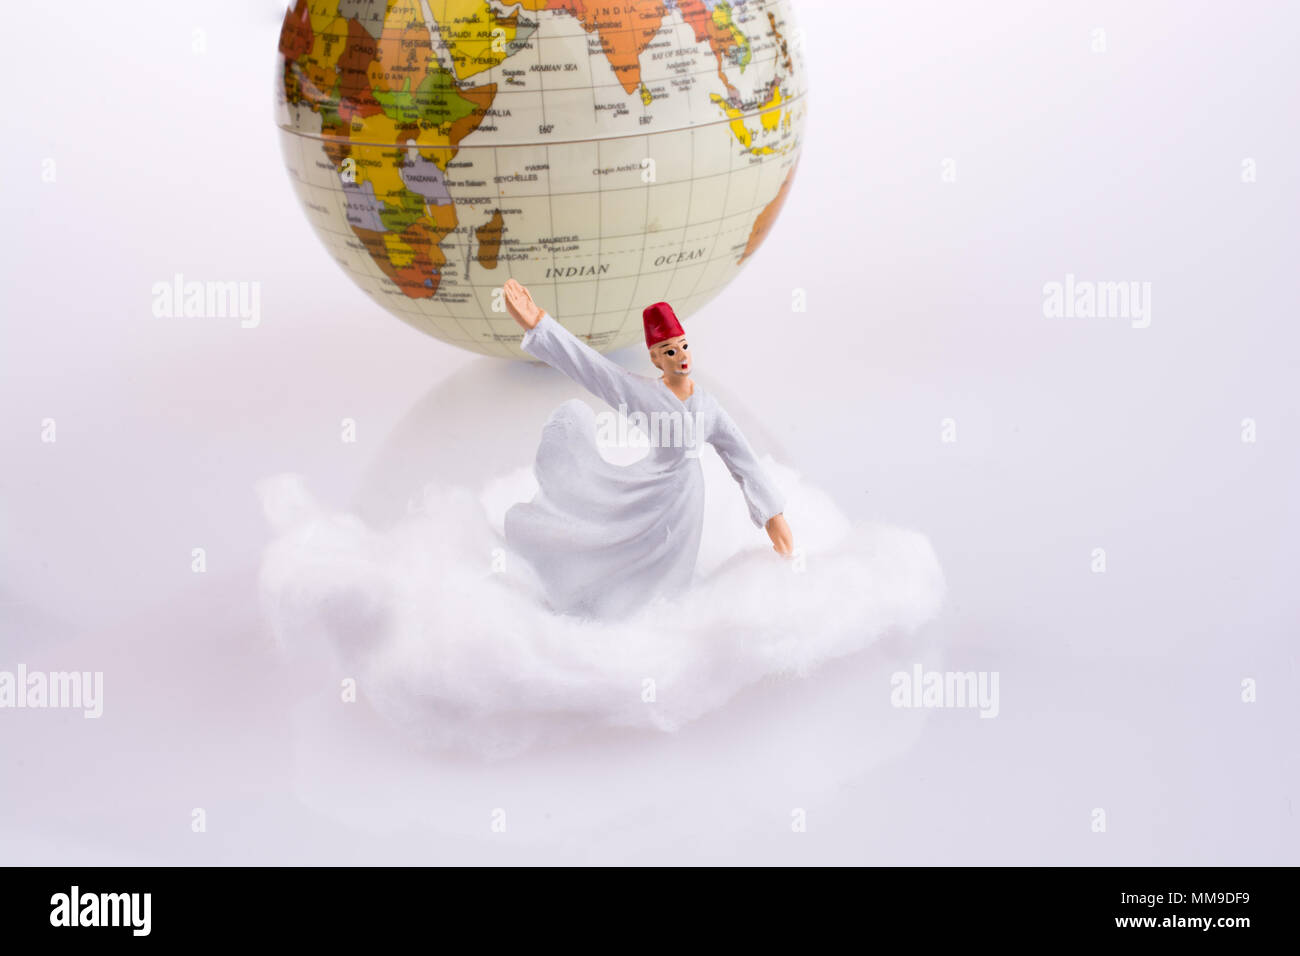 Sufi derviş on a white cloud near globe - Stock Image